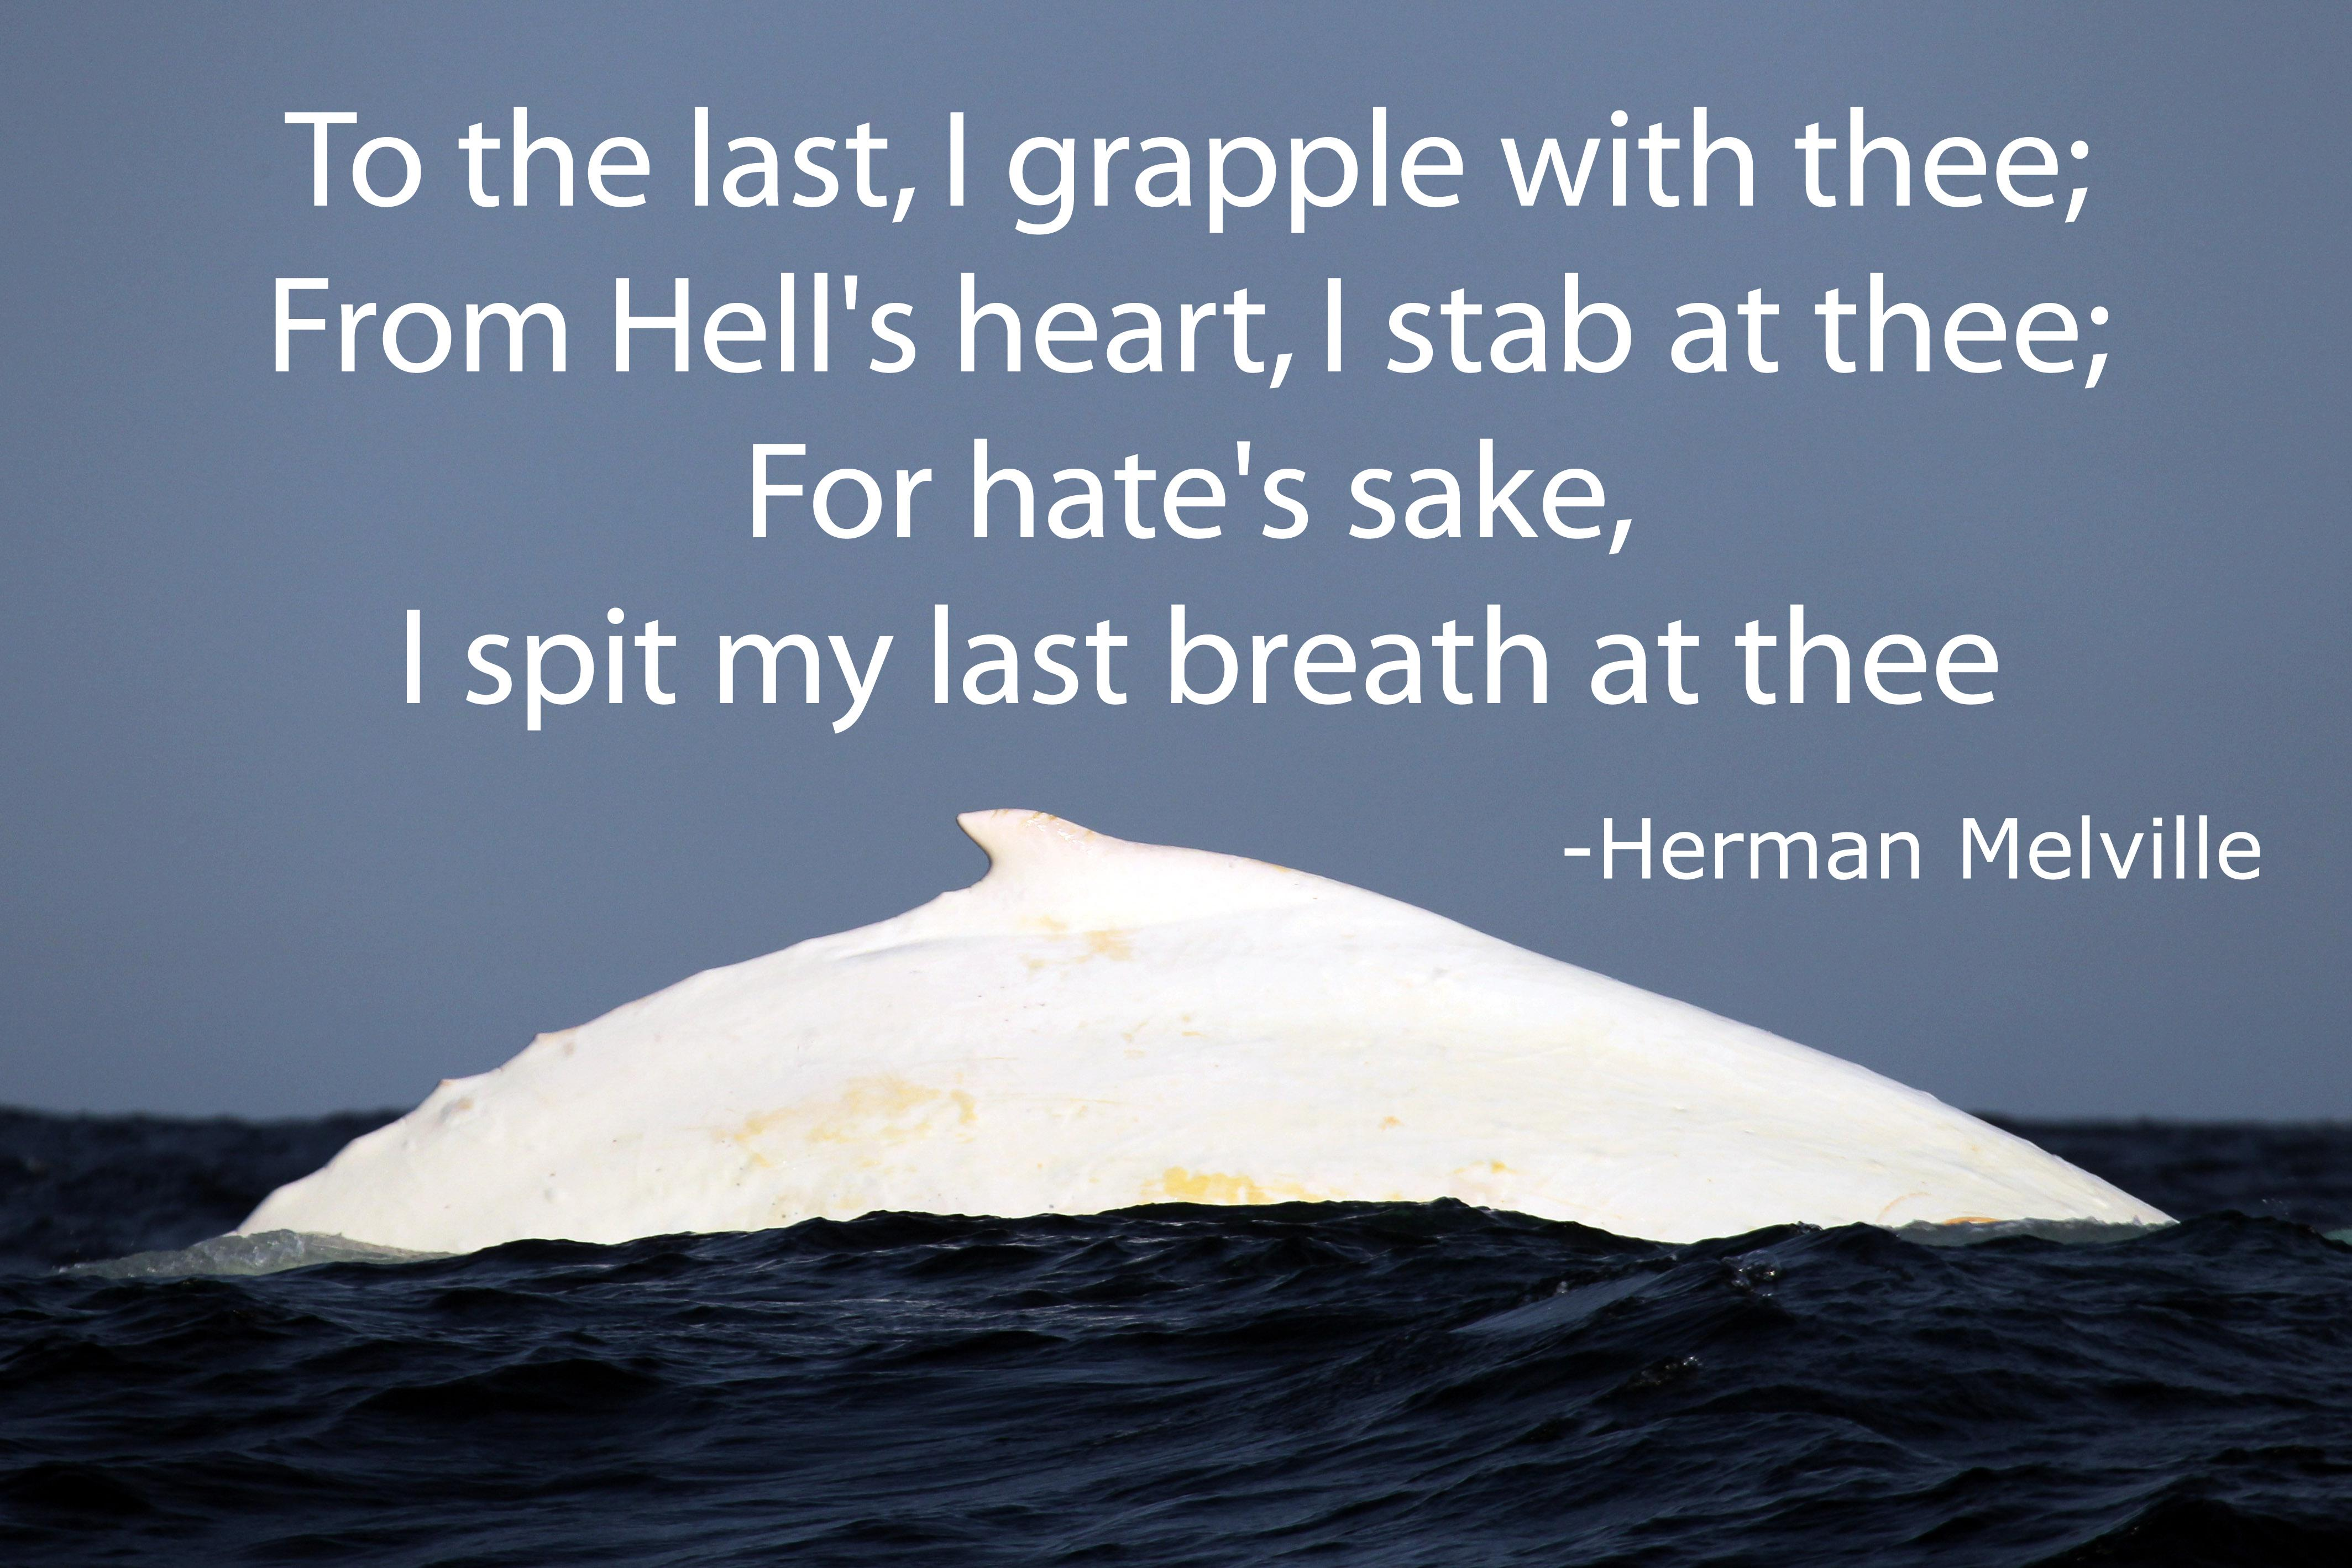 """"""" To the last, I grapple with thee; From Hell's heart, I stab at thee; For hate's sake, I spit my last breath at thee."""" Herman Melville {4255X2837}"""